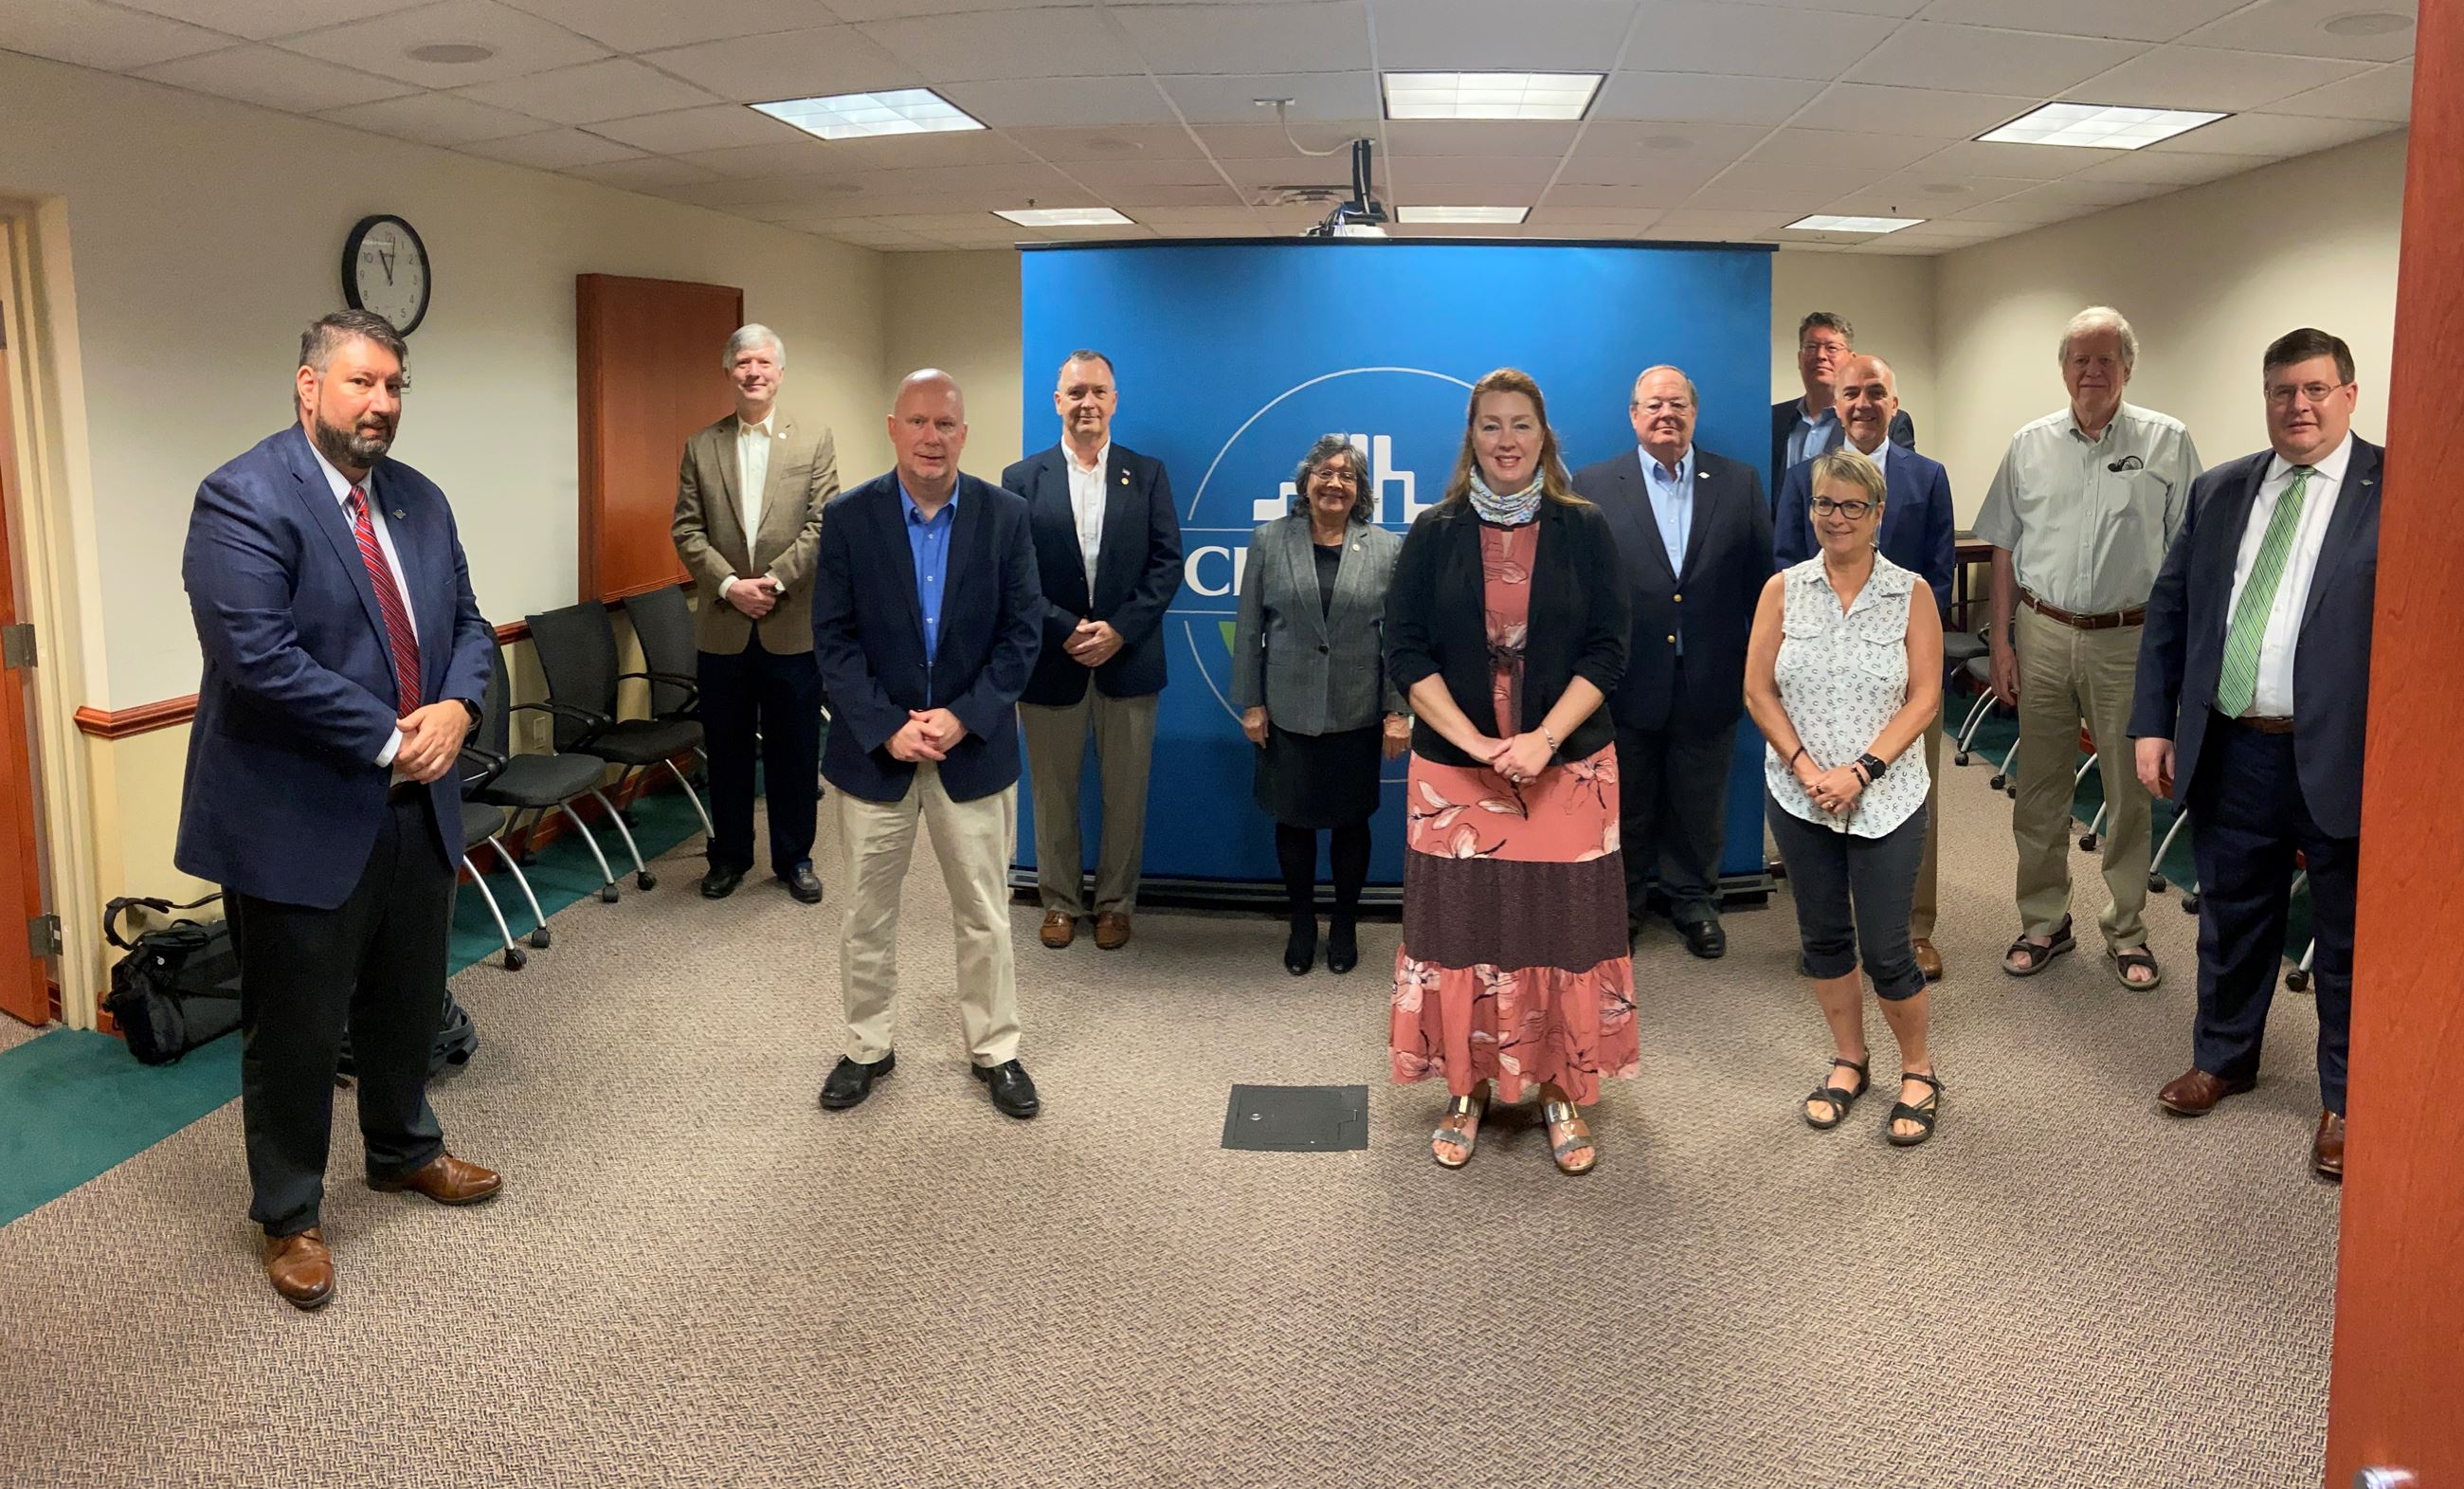 Goochland County - CVEC - Firefly Fiber Broadband Partnership Announcement - IMG_3671